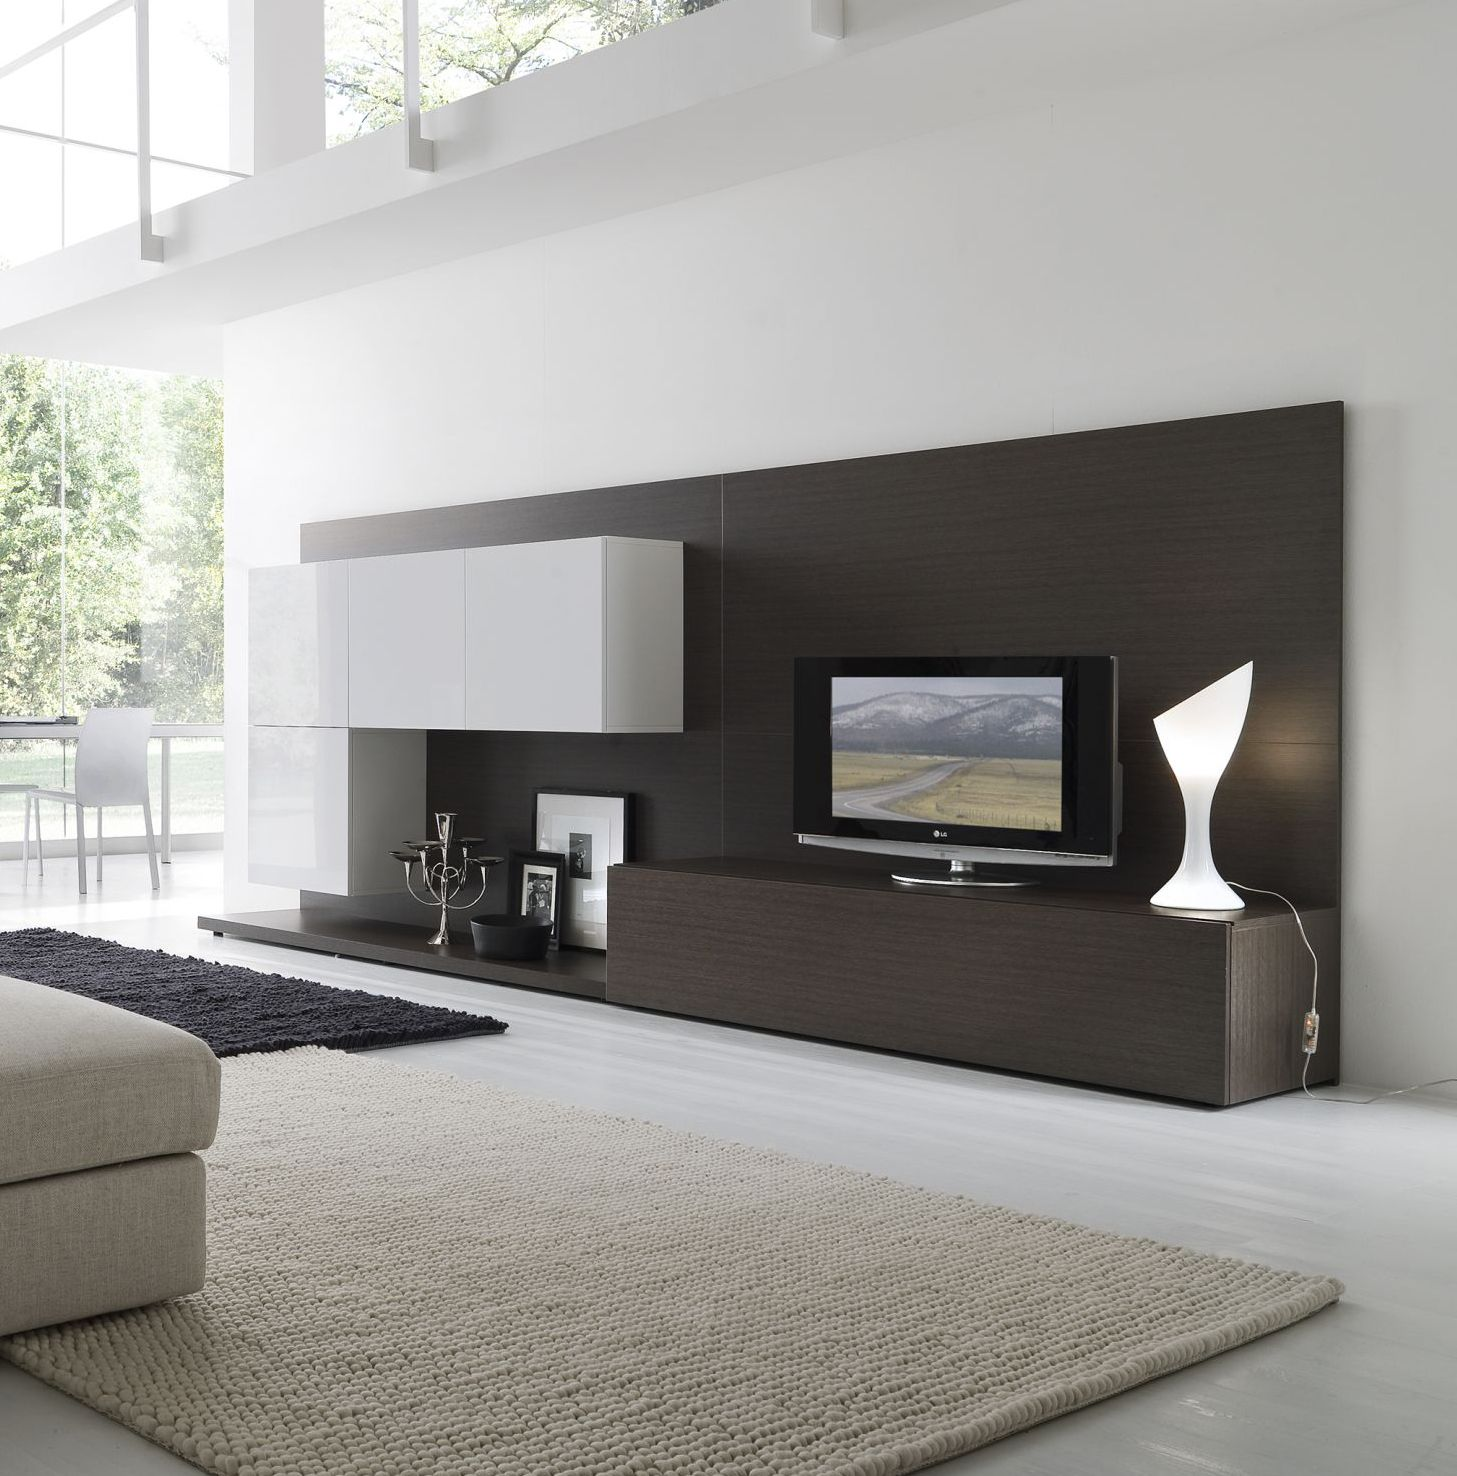 Abnan Wp Content Uploads 2012 Tv Unit For BedroomLiving